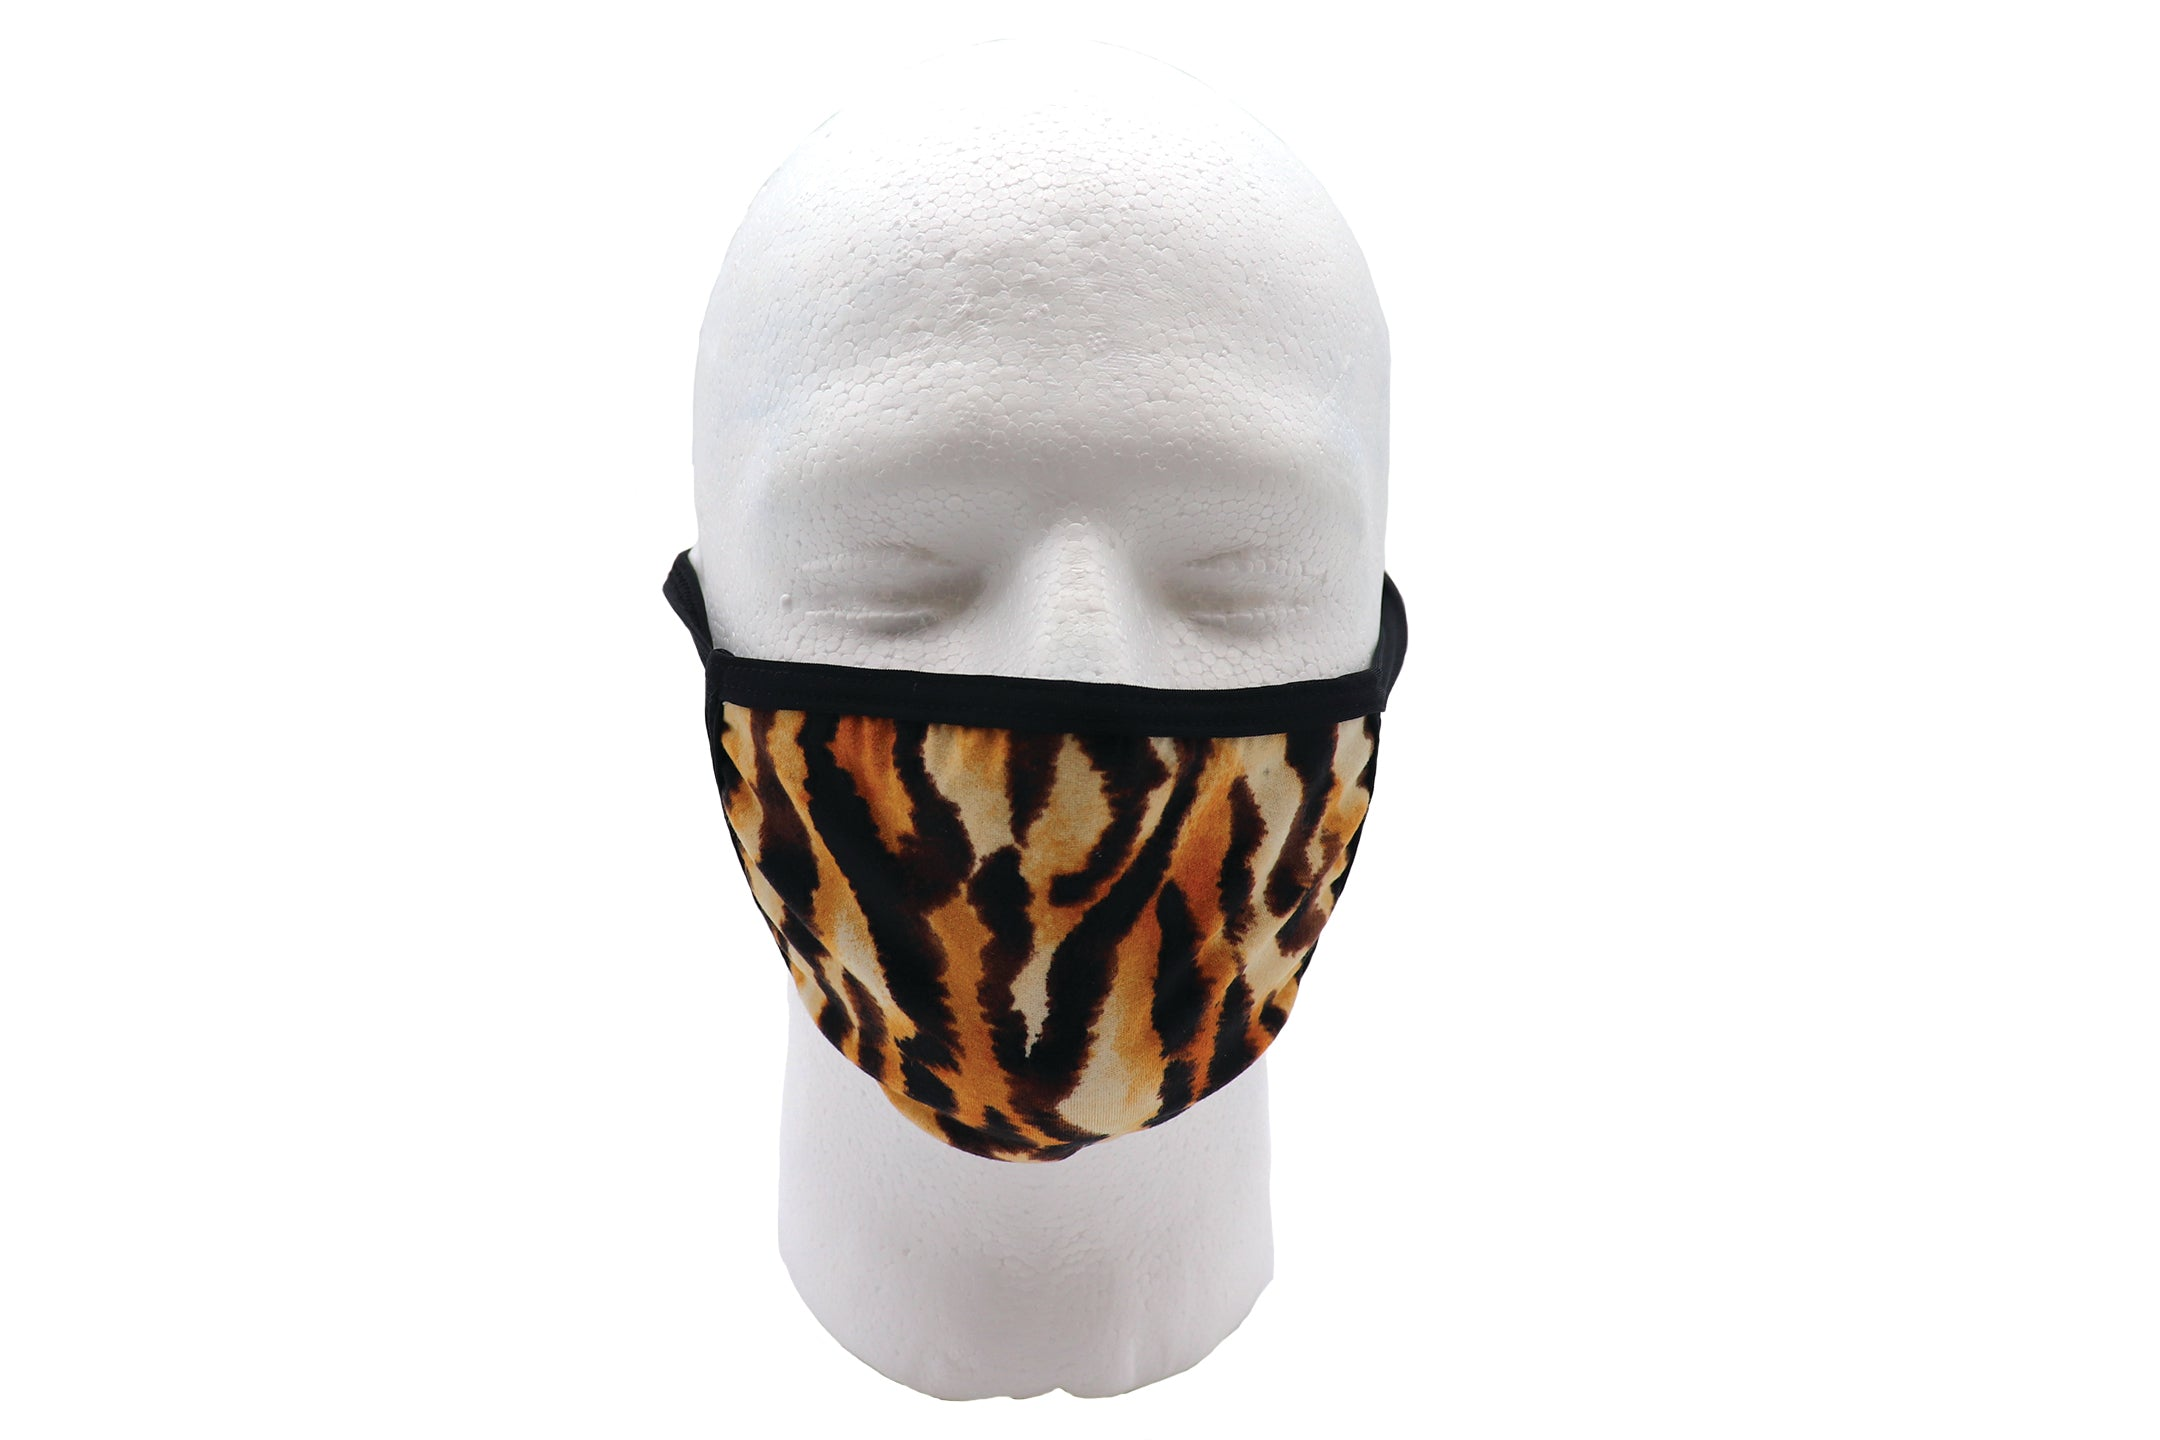 Tiger Face Mask wide coverage face mask adults for women or men. Black stripes over orange tiger. Helps with protection, mask, covid, covid-19 protection, corona virus protection, reusable face mask, re-usable mask, breathable and comfortable lycra face mask Carol Baskin face mask. Joe face mask.